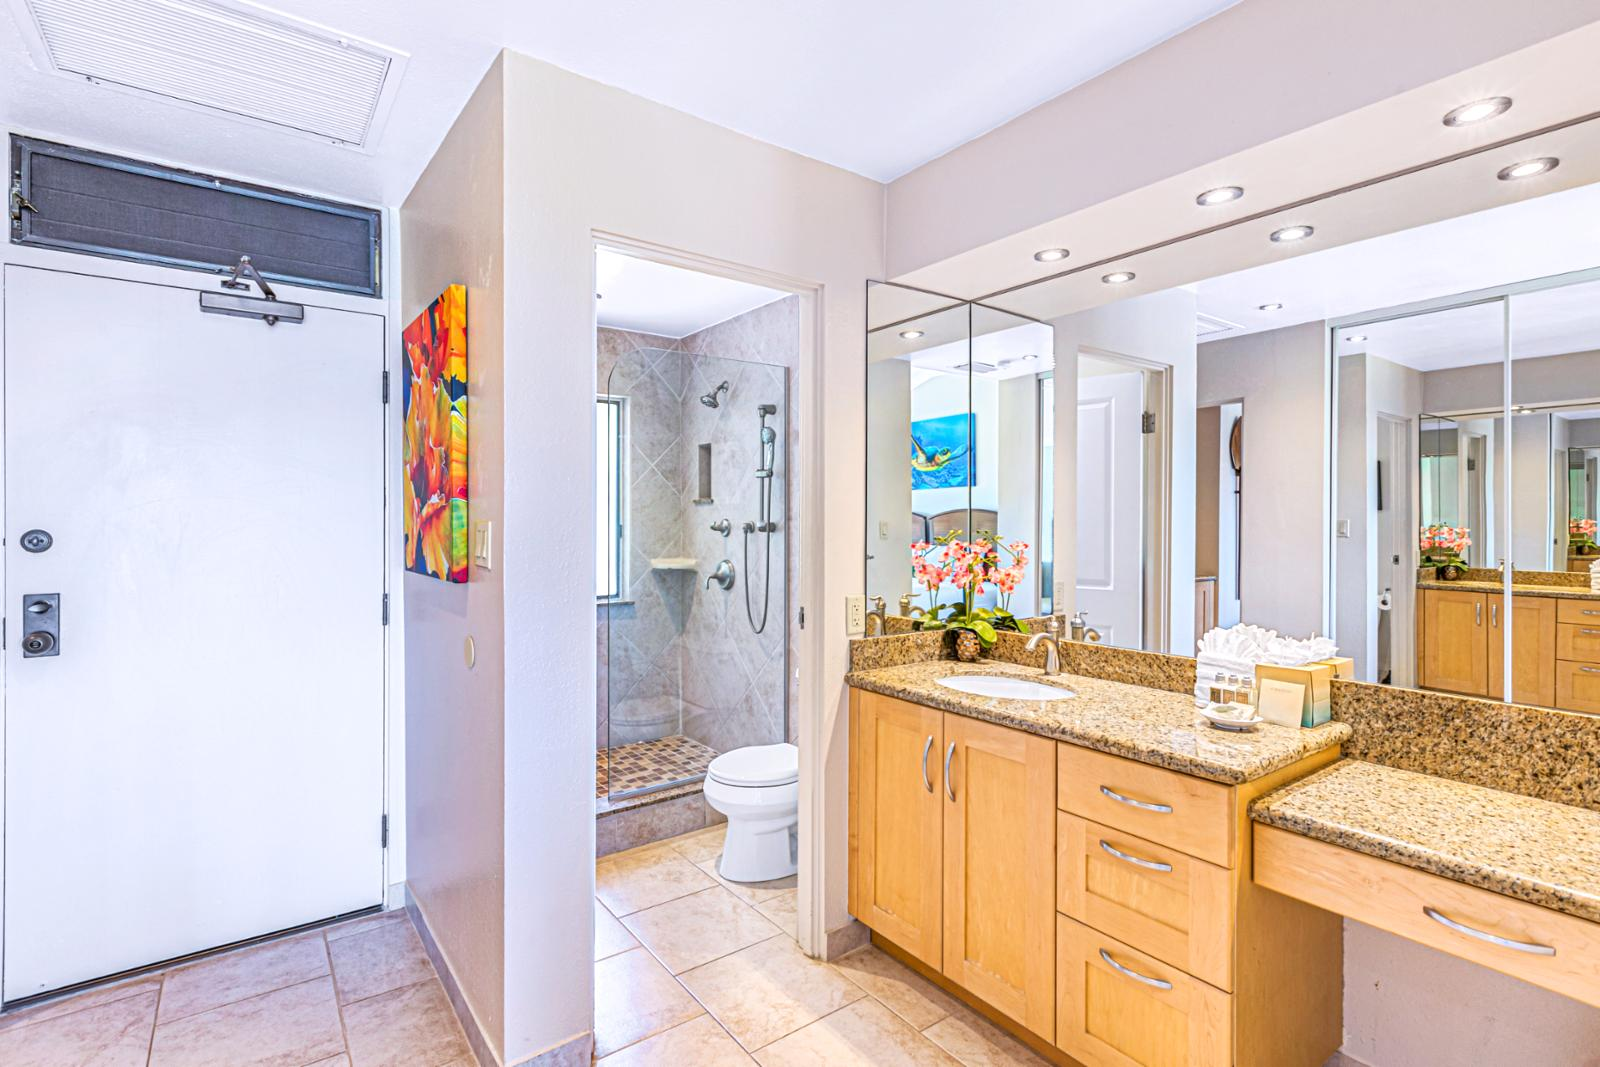 Custom countertops and cabinetry throughout this bathroom.